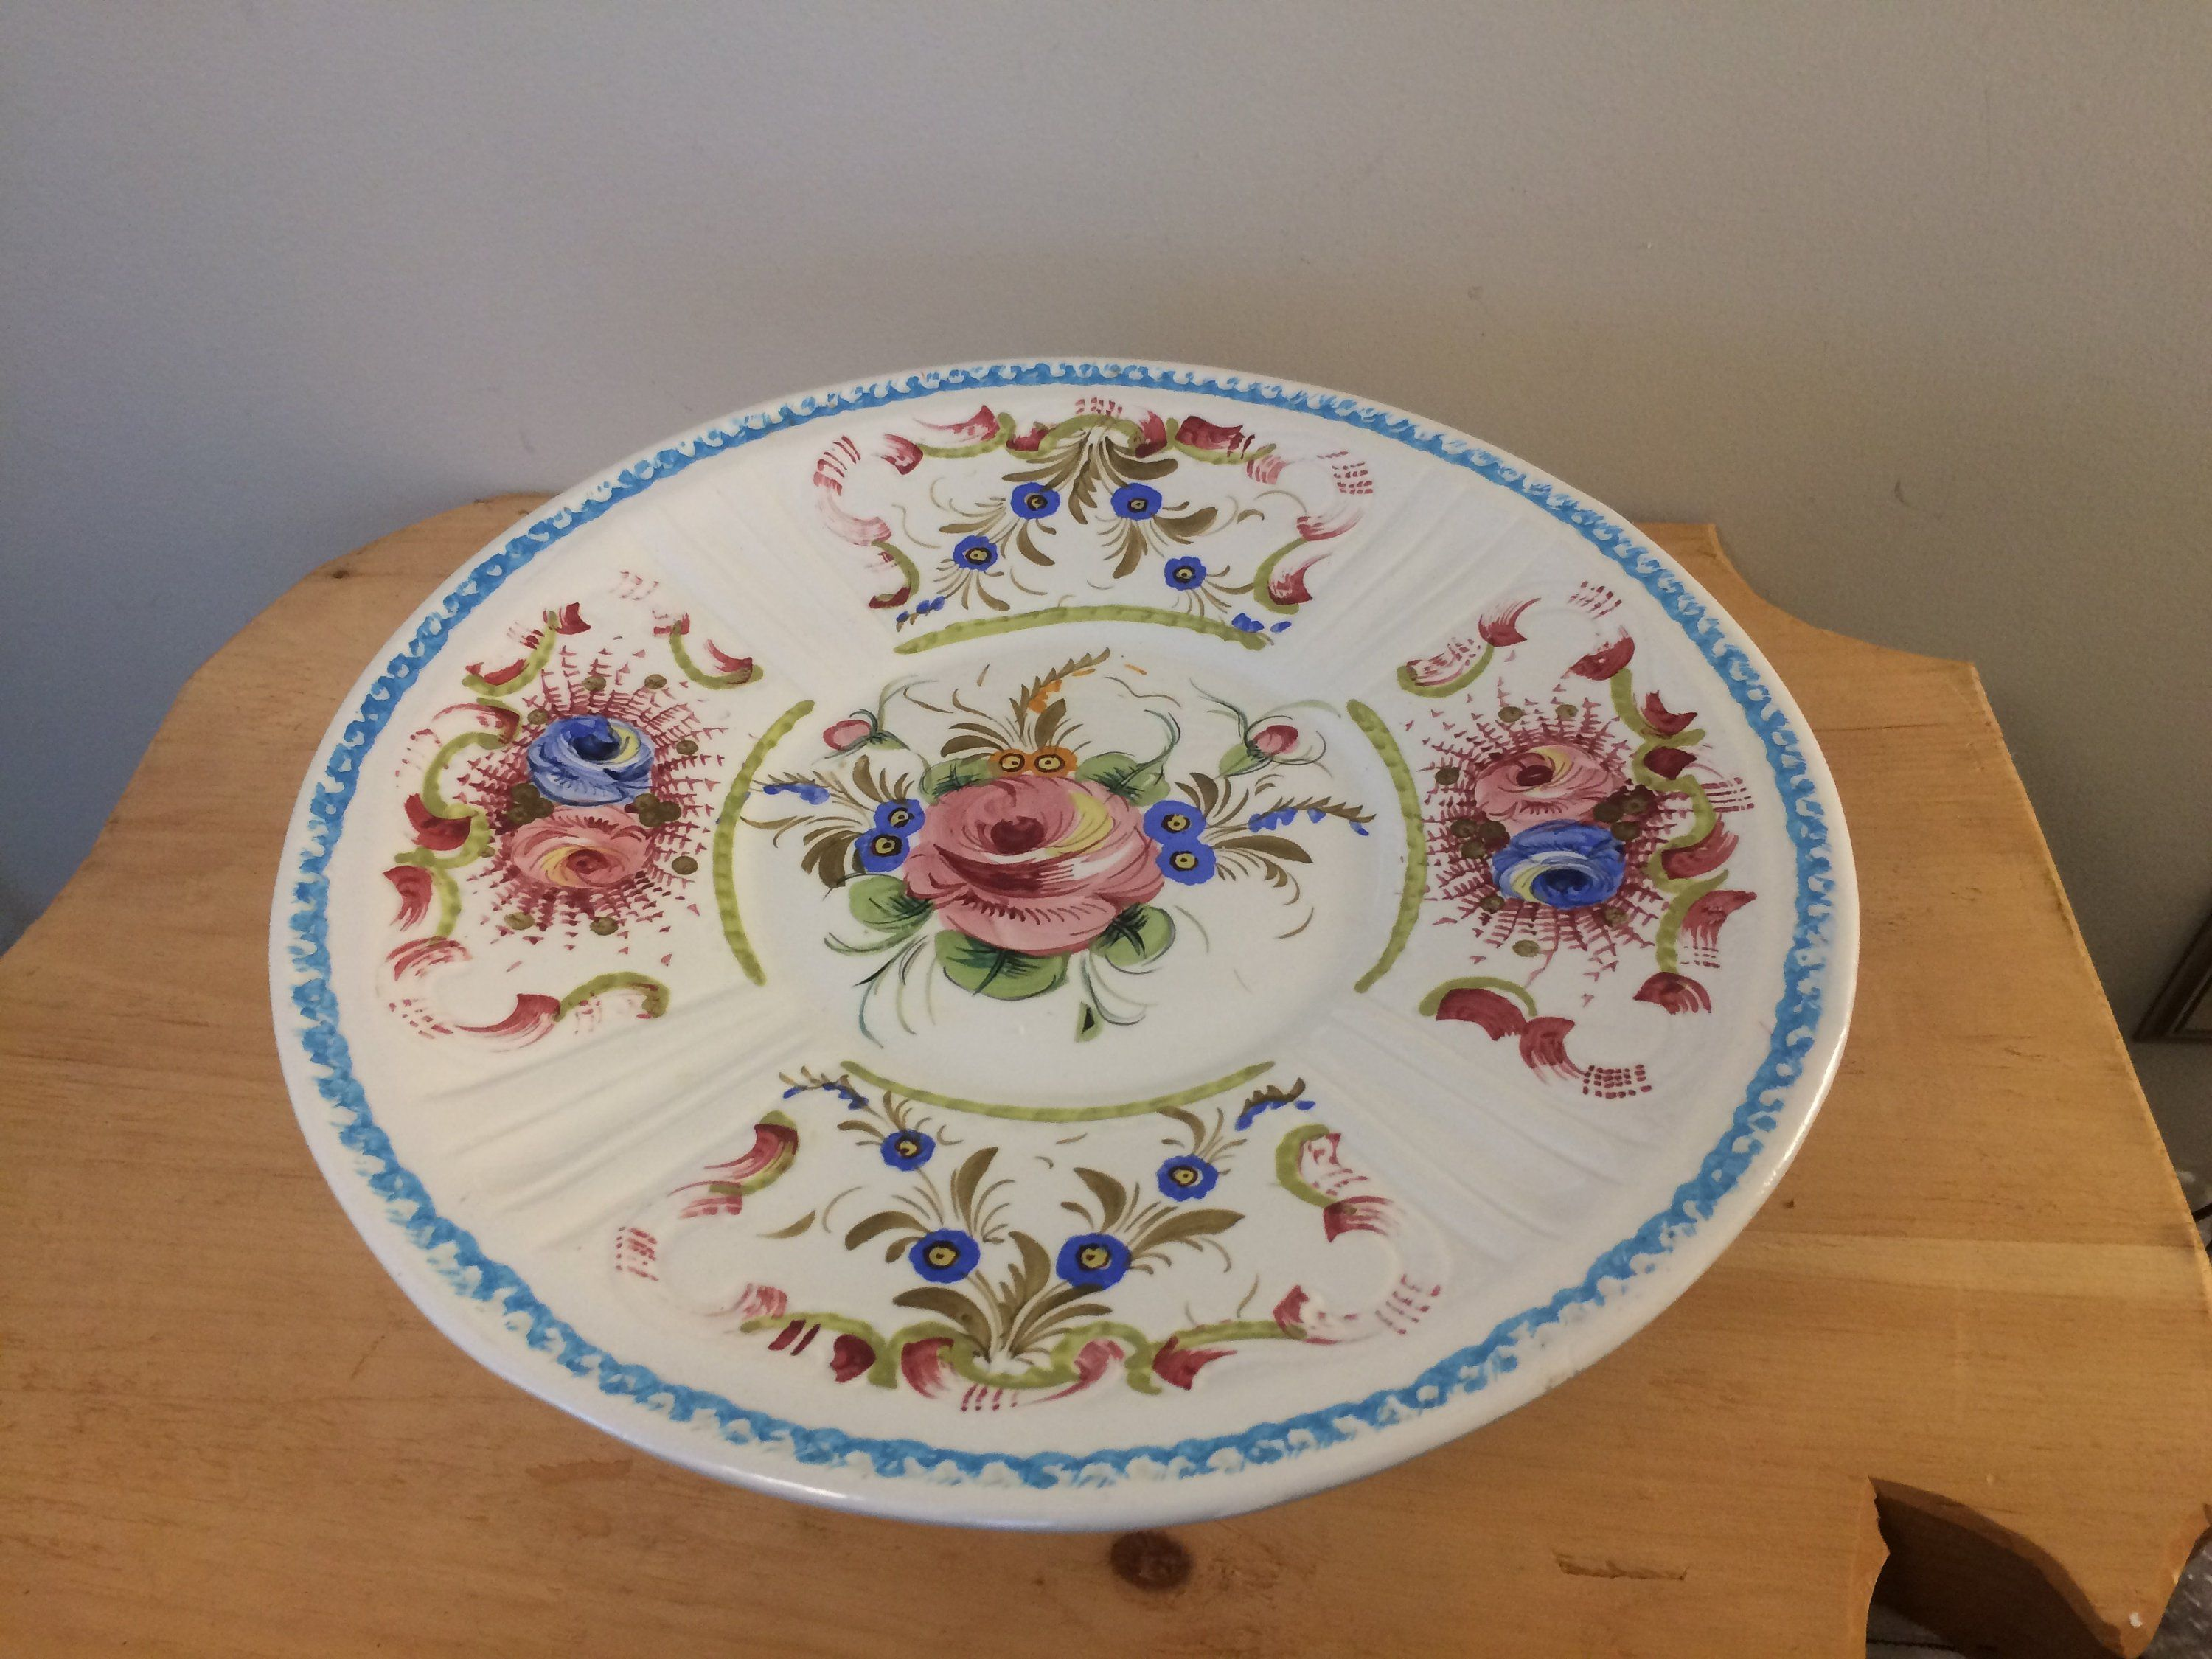 Very Large Floral Italian Cake Platter, Cake Stand, Cake Plate